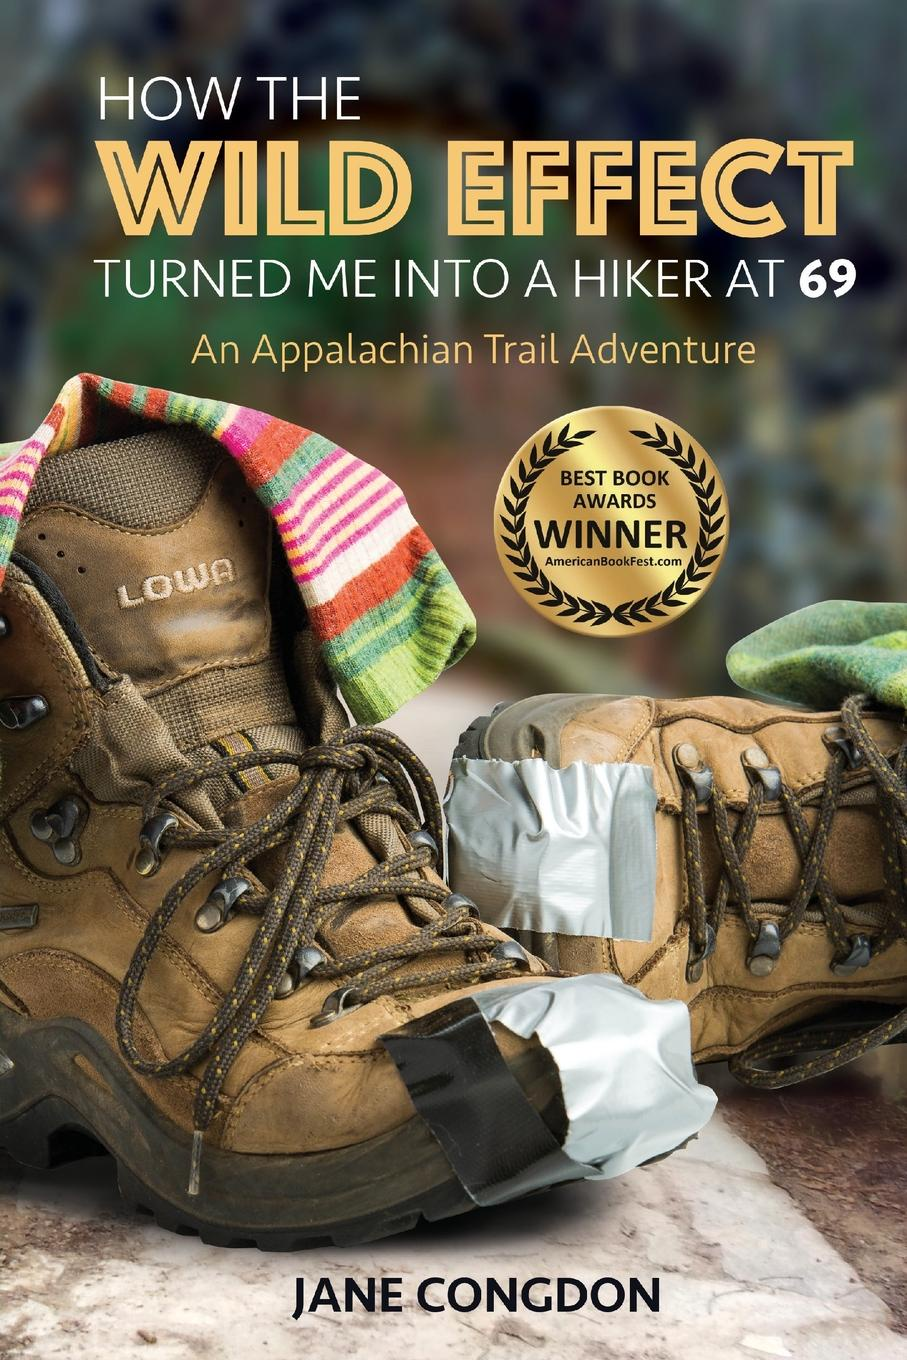 Jane E. Congdon How the WILD EFFECT Turned Me into a Hiker at 69. An Appalachian Trail Adventure